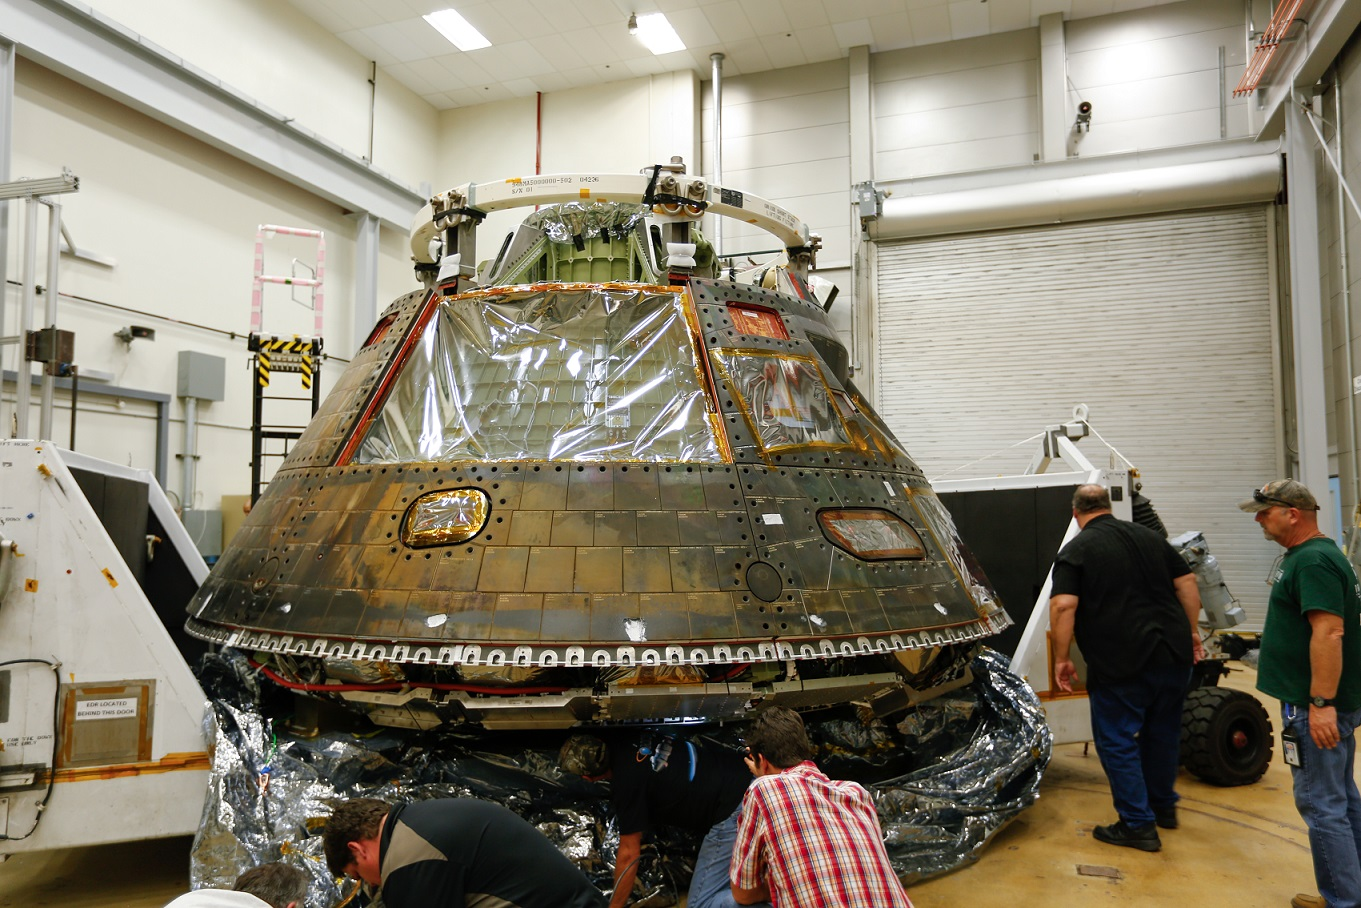 Orion spacecraft arrives to the Lockheed Martin Space Systems Company headquarters in Littleton, Colorado.